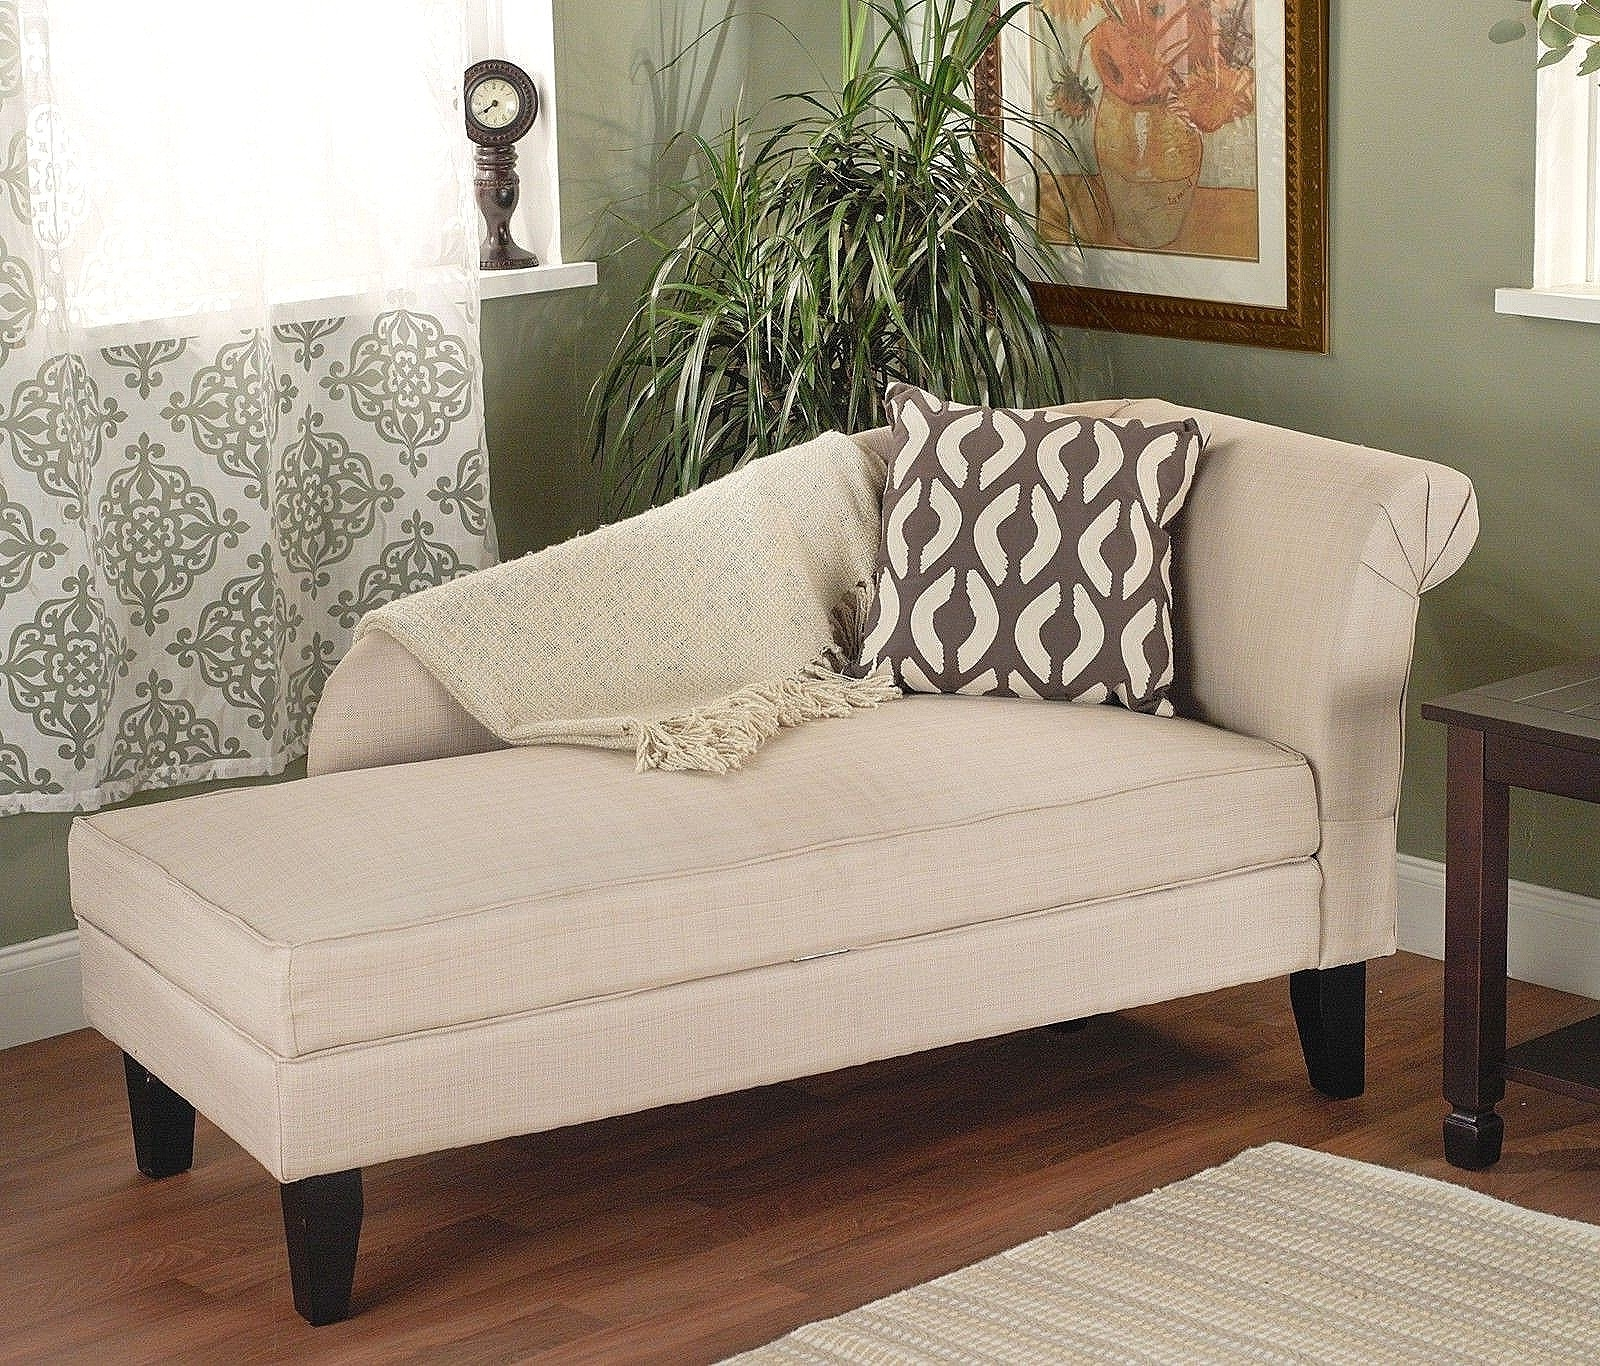 Overstock Chaise Lounges Throughout Most Up To Date Best Of Overstock Living Room Chairs (39 Photos (View 7 of 15)